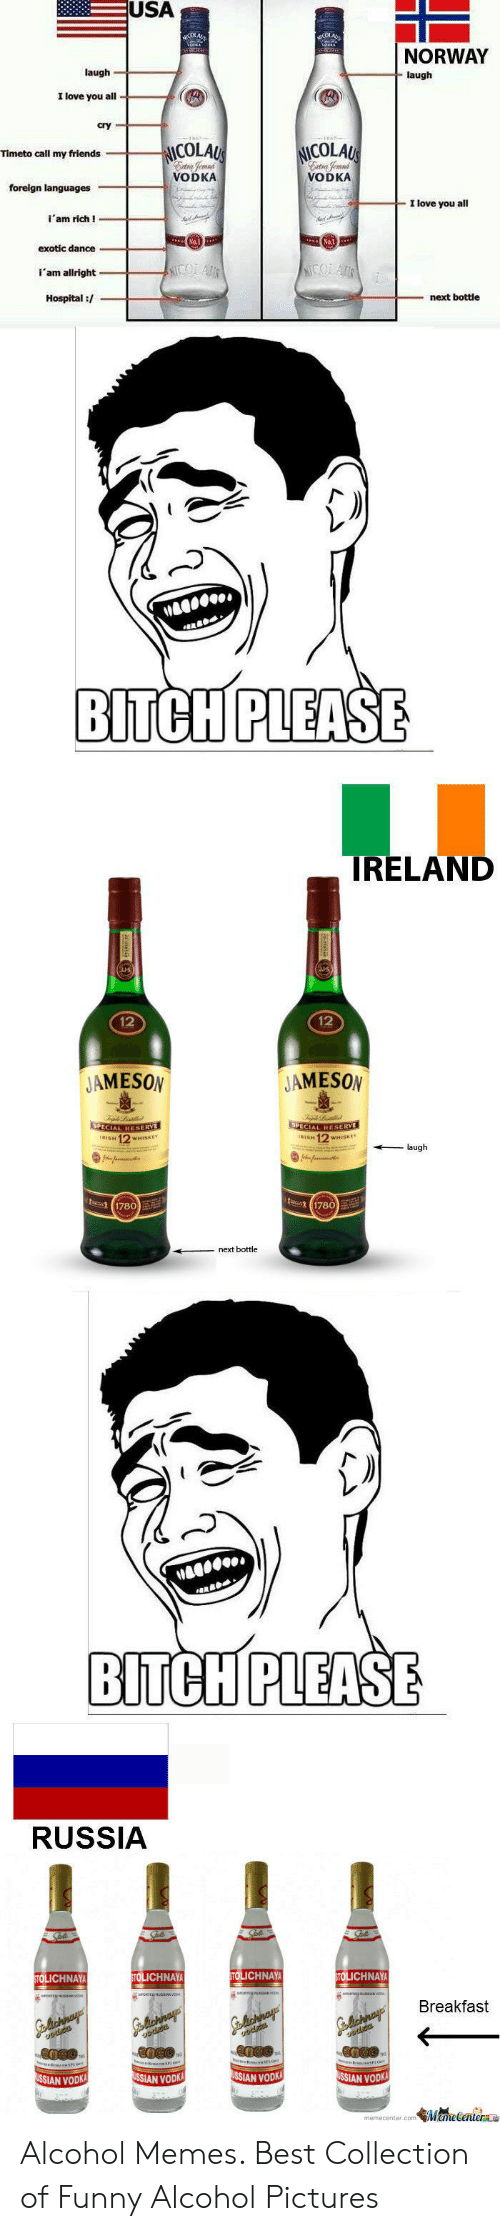 Funny Alcohol: USA  NORWAY  laugh  laugh  love you all  cry  ICOLAU  NICOLAU  Timeto call my friends  ntra Temnd  VODKA  ntro femnd  VODKA  forelgn languages  I love you all  i'am rich!  No.1  No1  exotic dance  ICOLAUR  i'am allright  Hospital /  next bottle  .  BITCH PLEASE  IRELAND  12  12  JAMESON  JAMESON  SPECIAL RESERYE  rISH 12 WHISKEY  SPECIAL RESERVE  IRISH 12 WHISKEY  laugh  nfate  C 1780  t 1780  next bottle  BITCH PLEASE  RUSSIA  STOLICHNAYA  STOLICHNAY  STOLICHNAYA  STOLICHNAY  Golichnay  odis  Breakfast  alichnay  dica  chnay  9odits  Gchnays  USSIAN VODKA  USSIAN VODK  USSIAN VODK  USSIAN VODKA  memecenter.comMemeCenter Alcohol Memes. Best Collection of Funny Alcohol Pictures